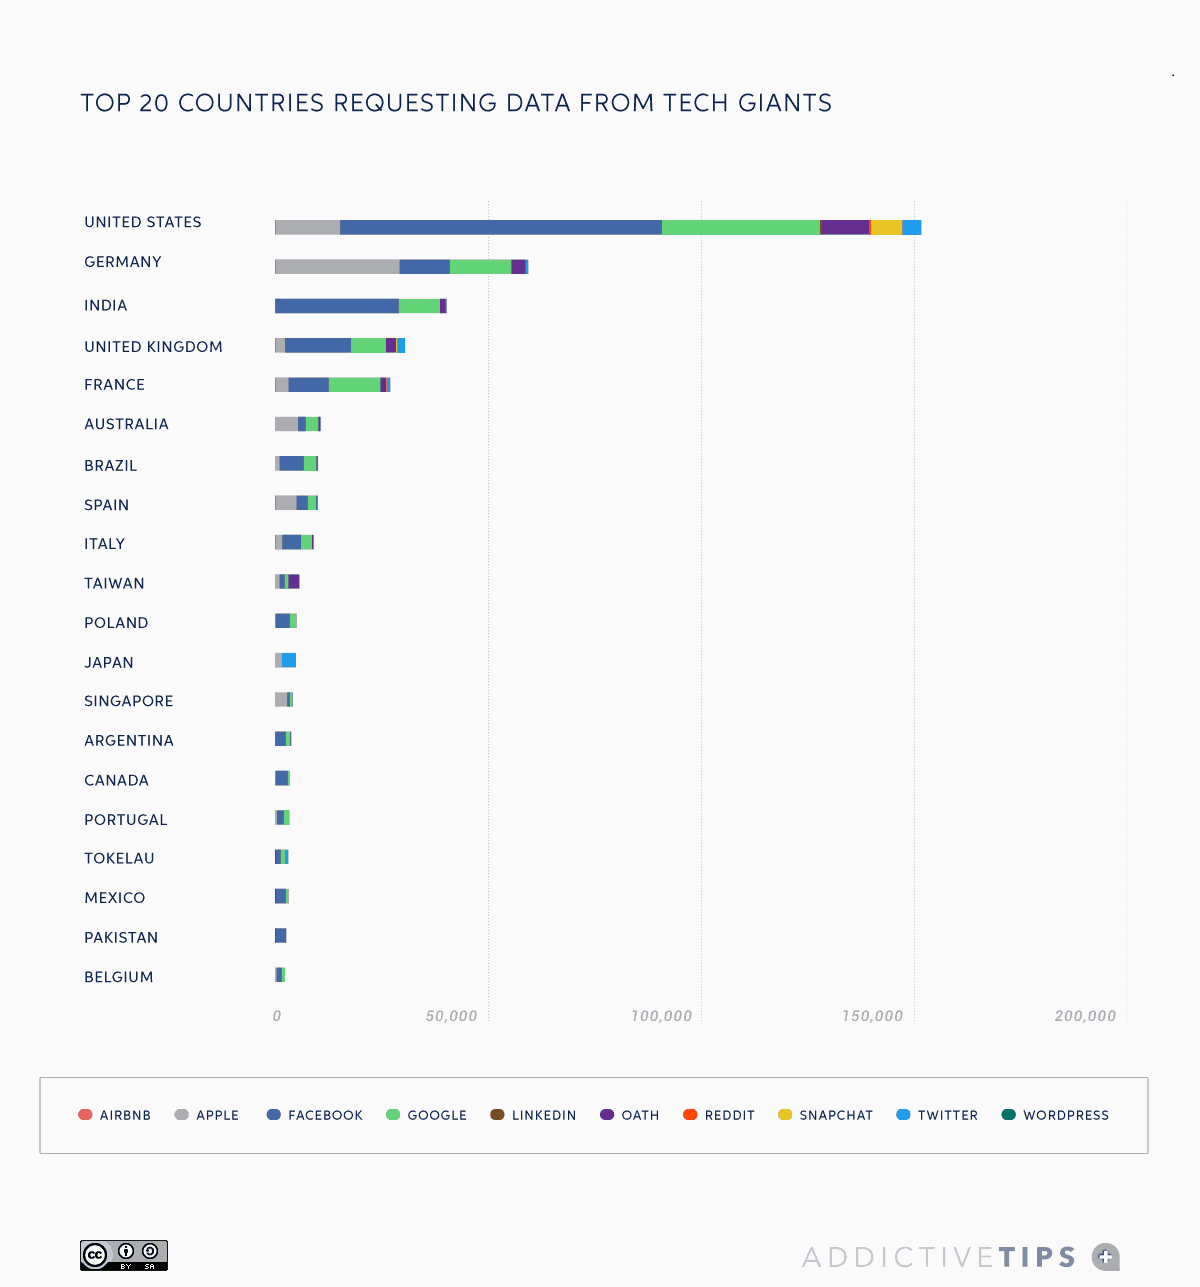 13_Top-20-countries-requesting-data-from-tech-giants-2019